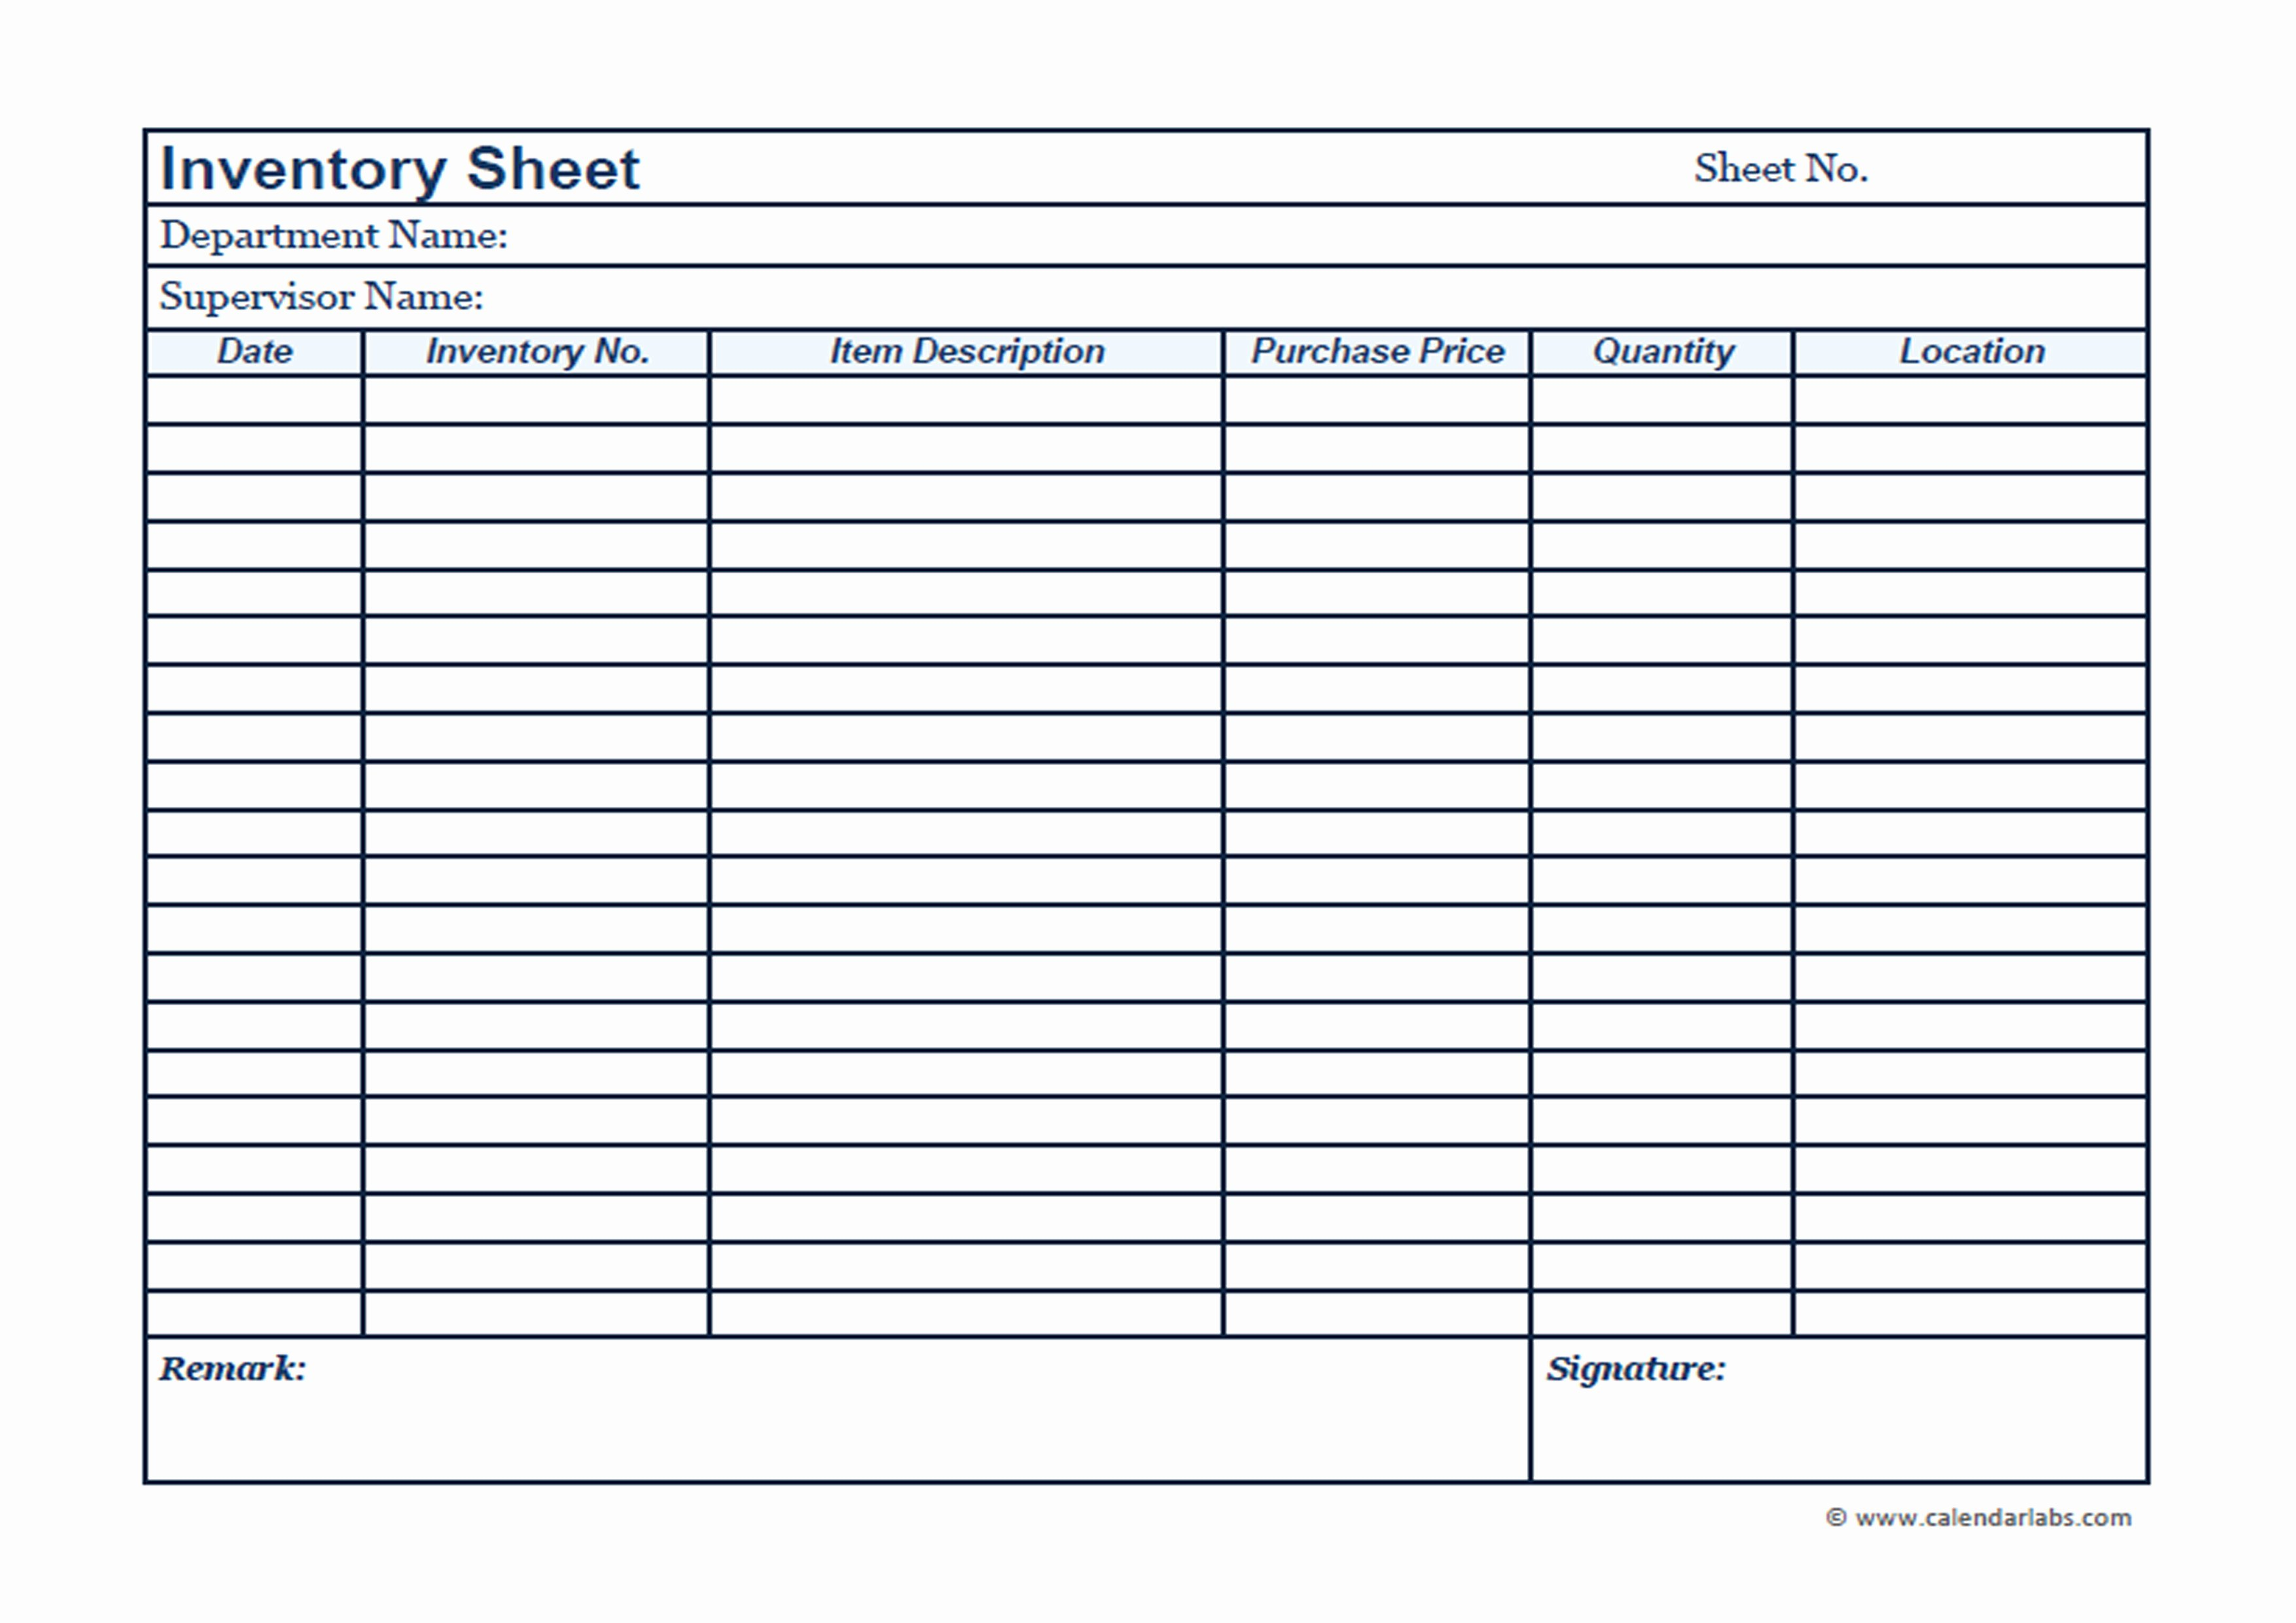 Printable Inventory List Template New Business Inventory Template Free Printable Templates